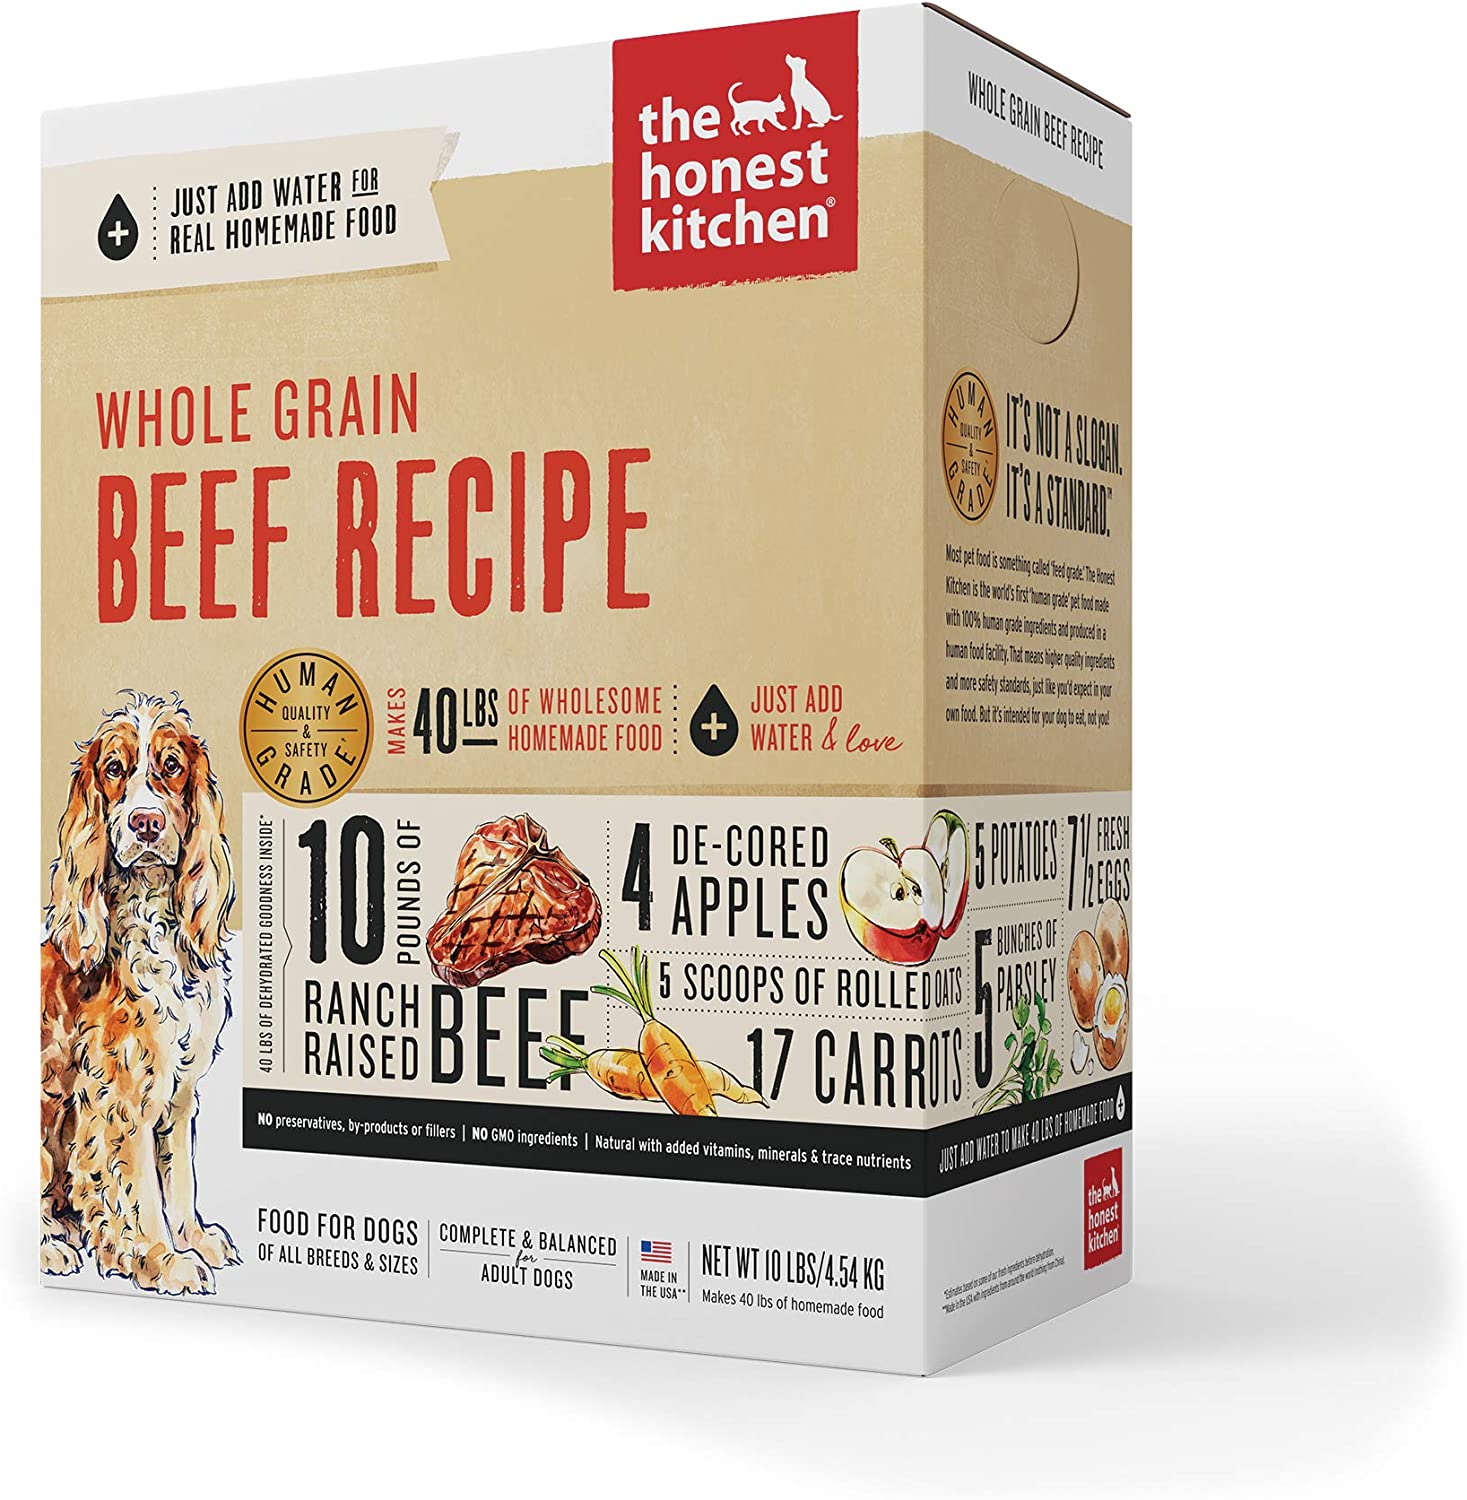 7. The Honest Kitchen Whole Grain Beef Recipe Dehydrated Dog Food